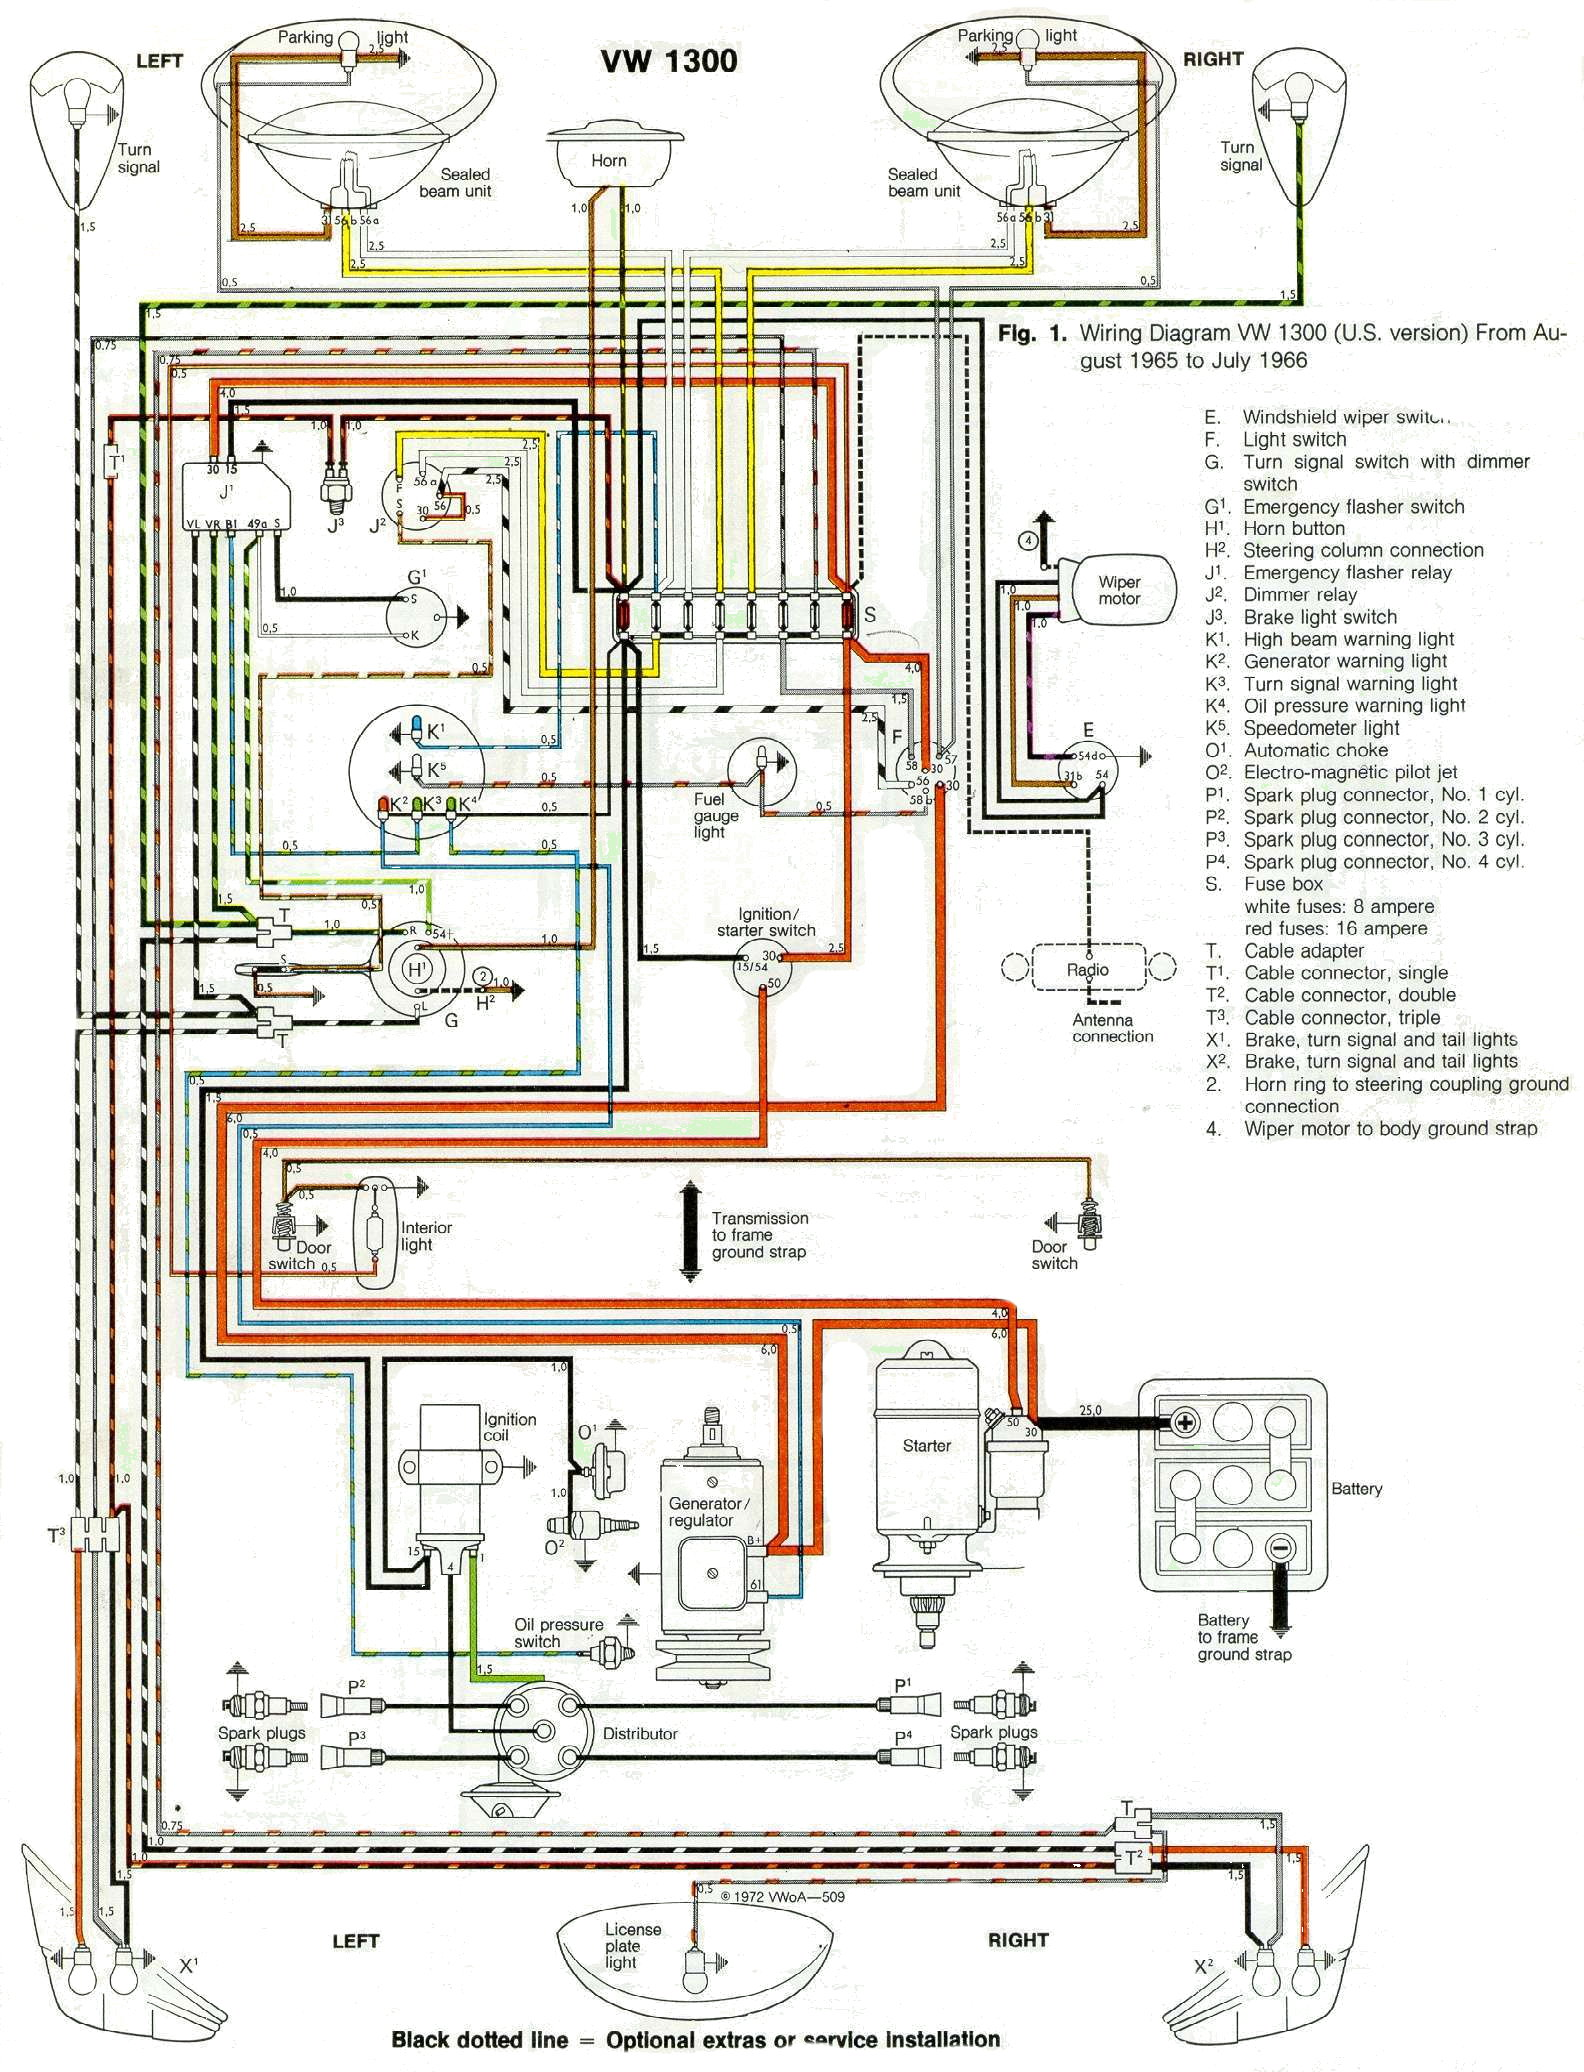 1966 Wiring 67 vw bus wiring harness 71 vw wiring harness \u2022 wiring diagrams Wiring Harness Diagram at metegol.co